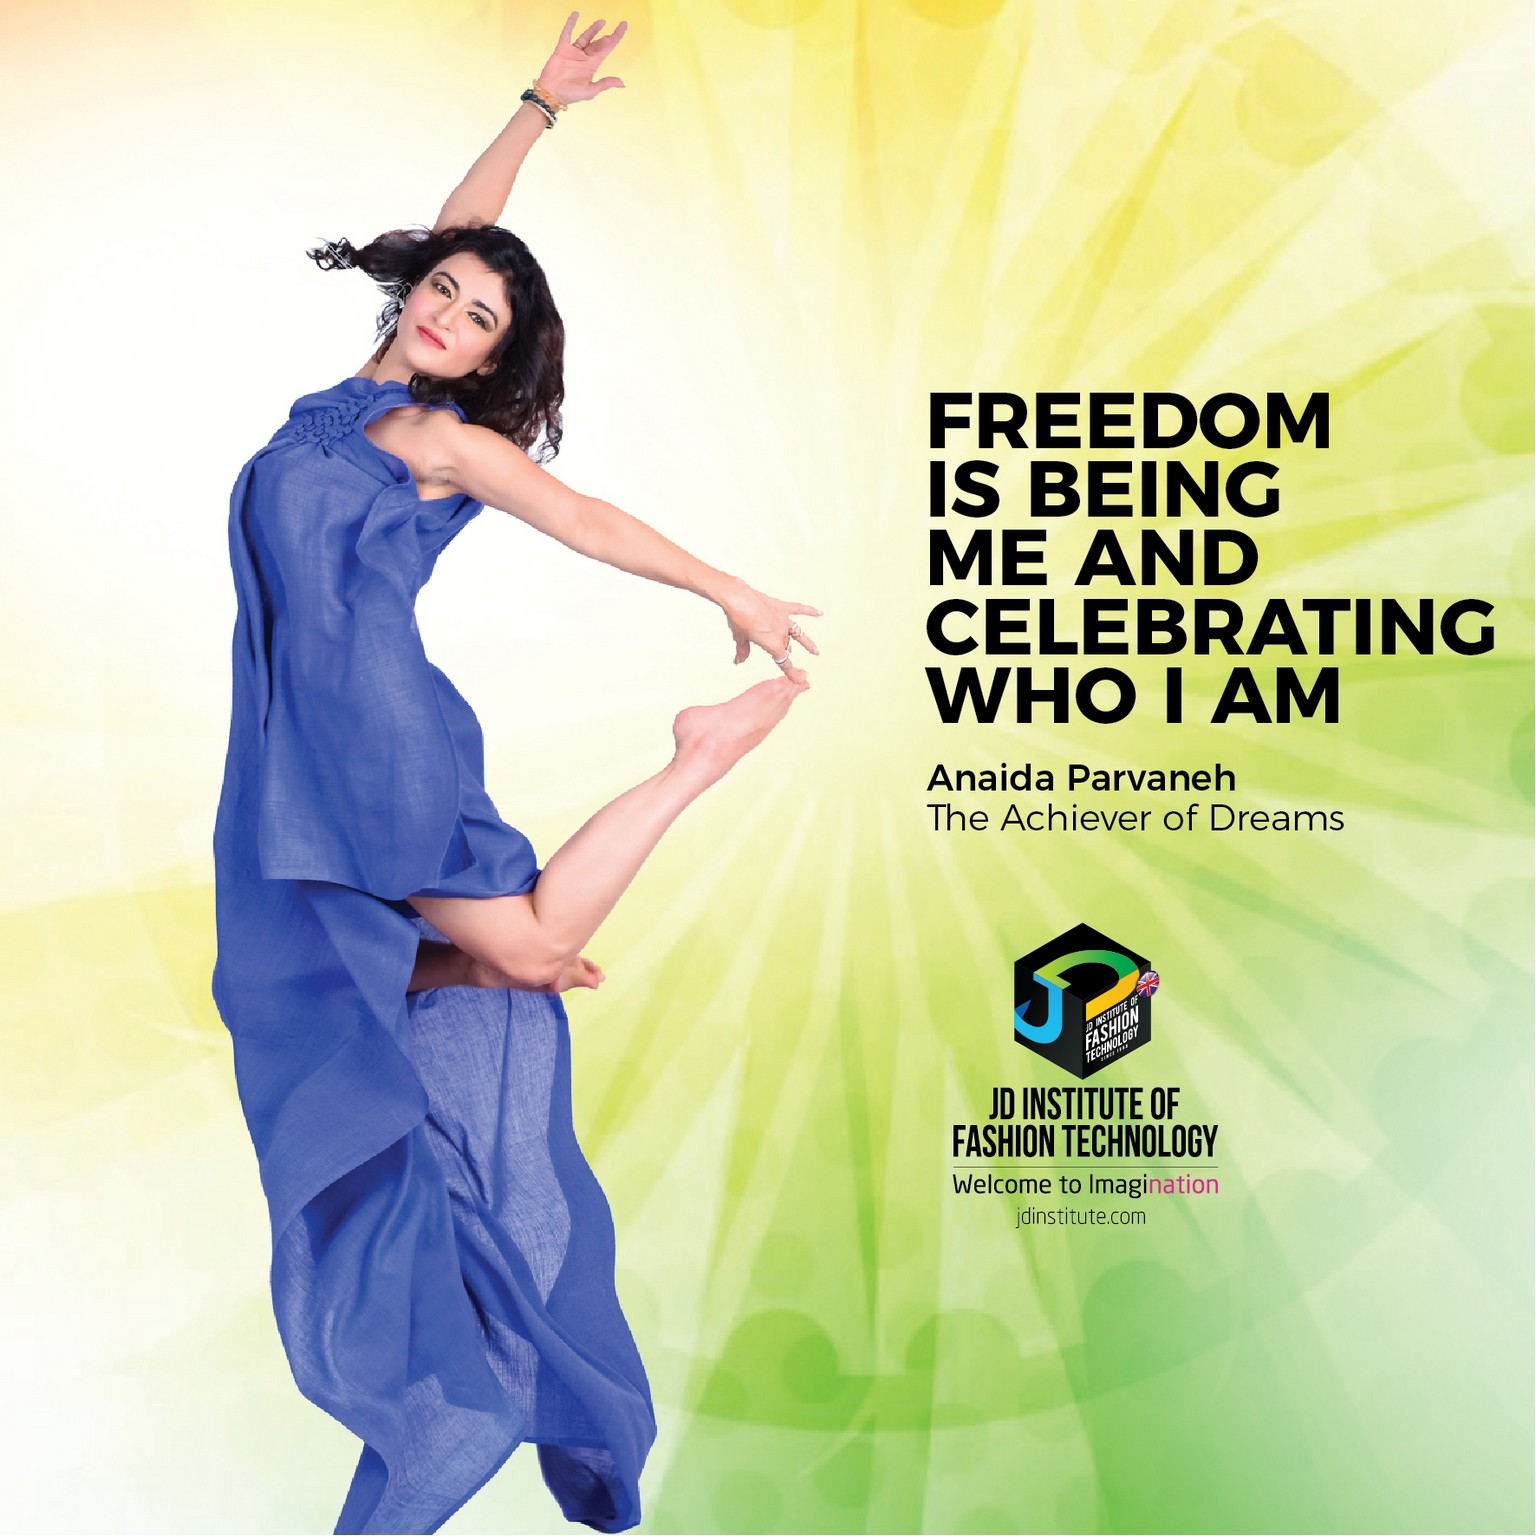 Campaign-Freedom-JD Institute of Fashion Technology | Photography : Jerin Nath (@jerin_nath) campaign freedom - Campaign Freedom 9 - Campaign Freedom – JD Institute of Fashion Technology